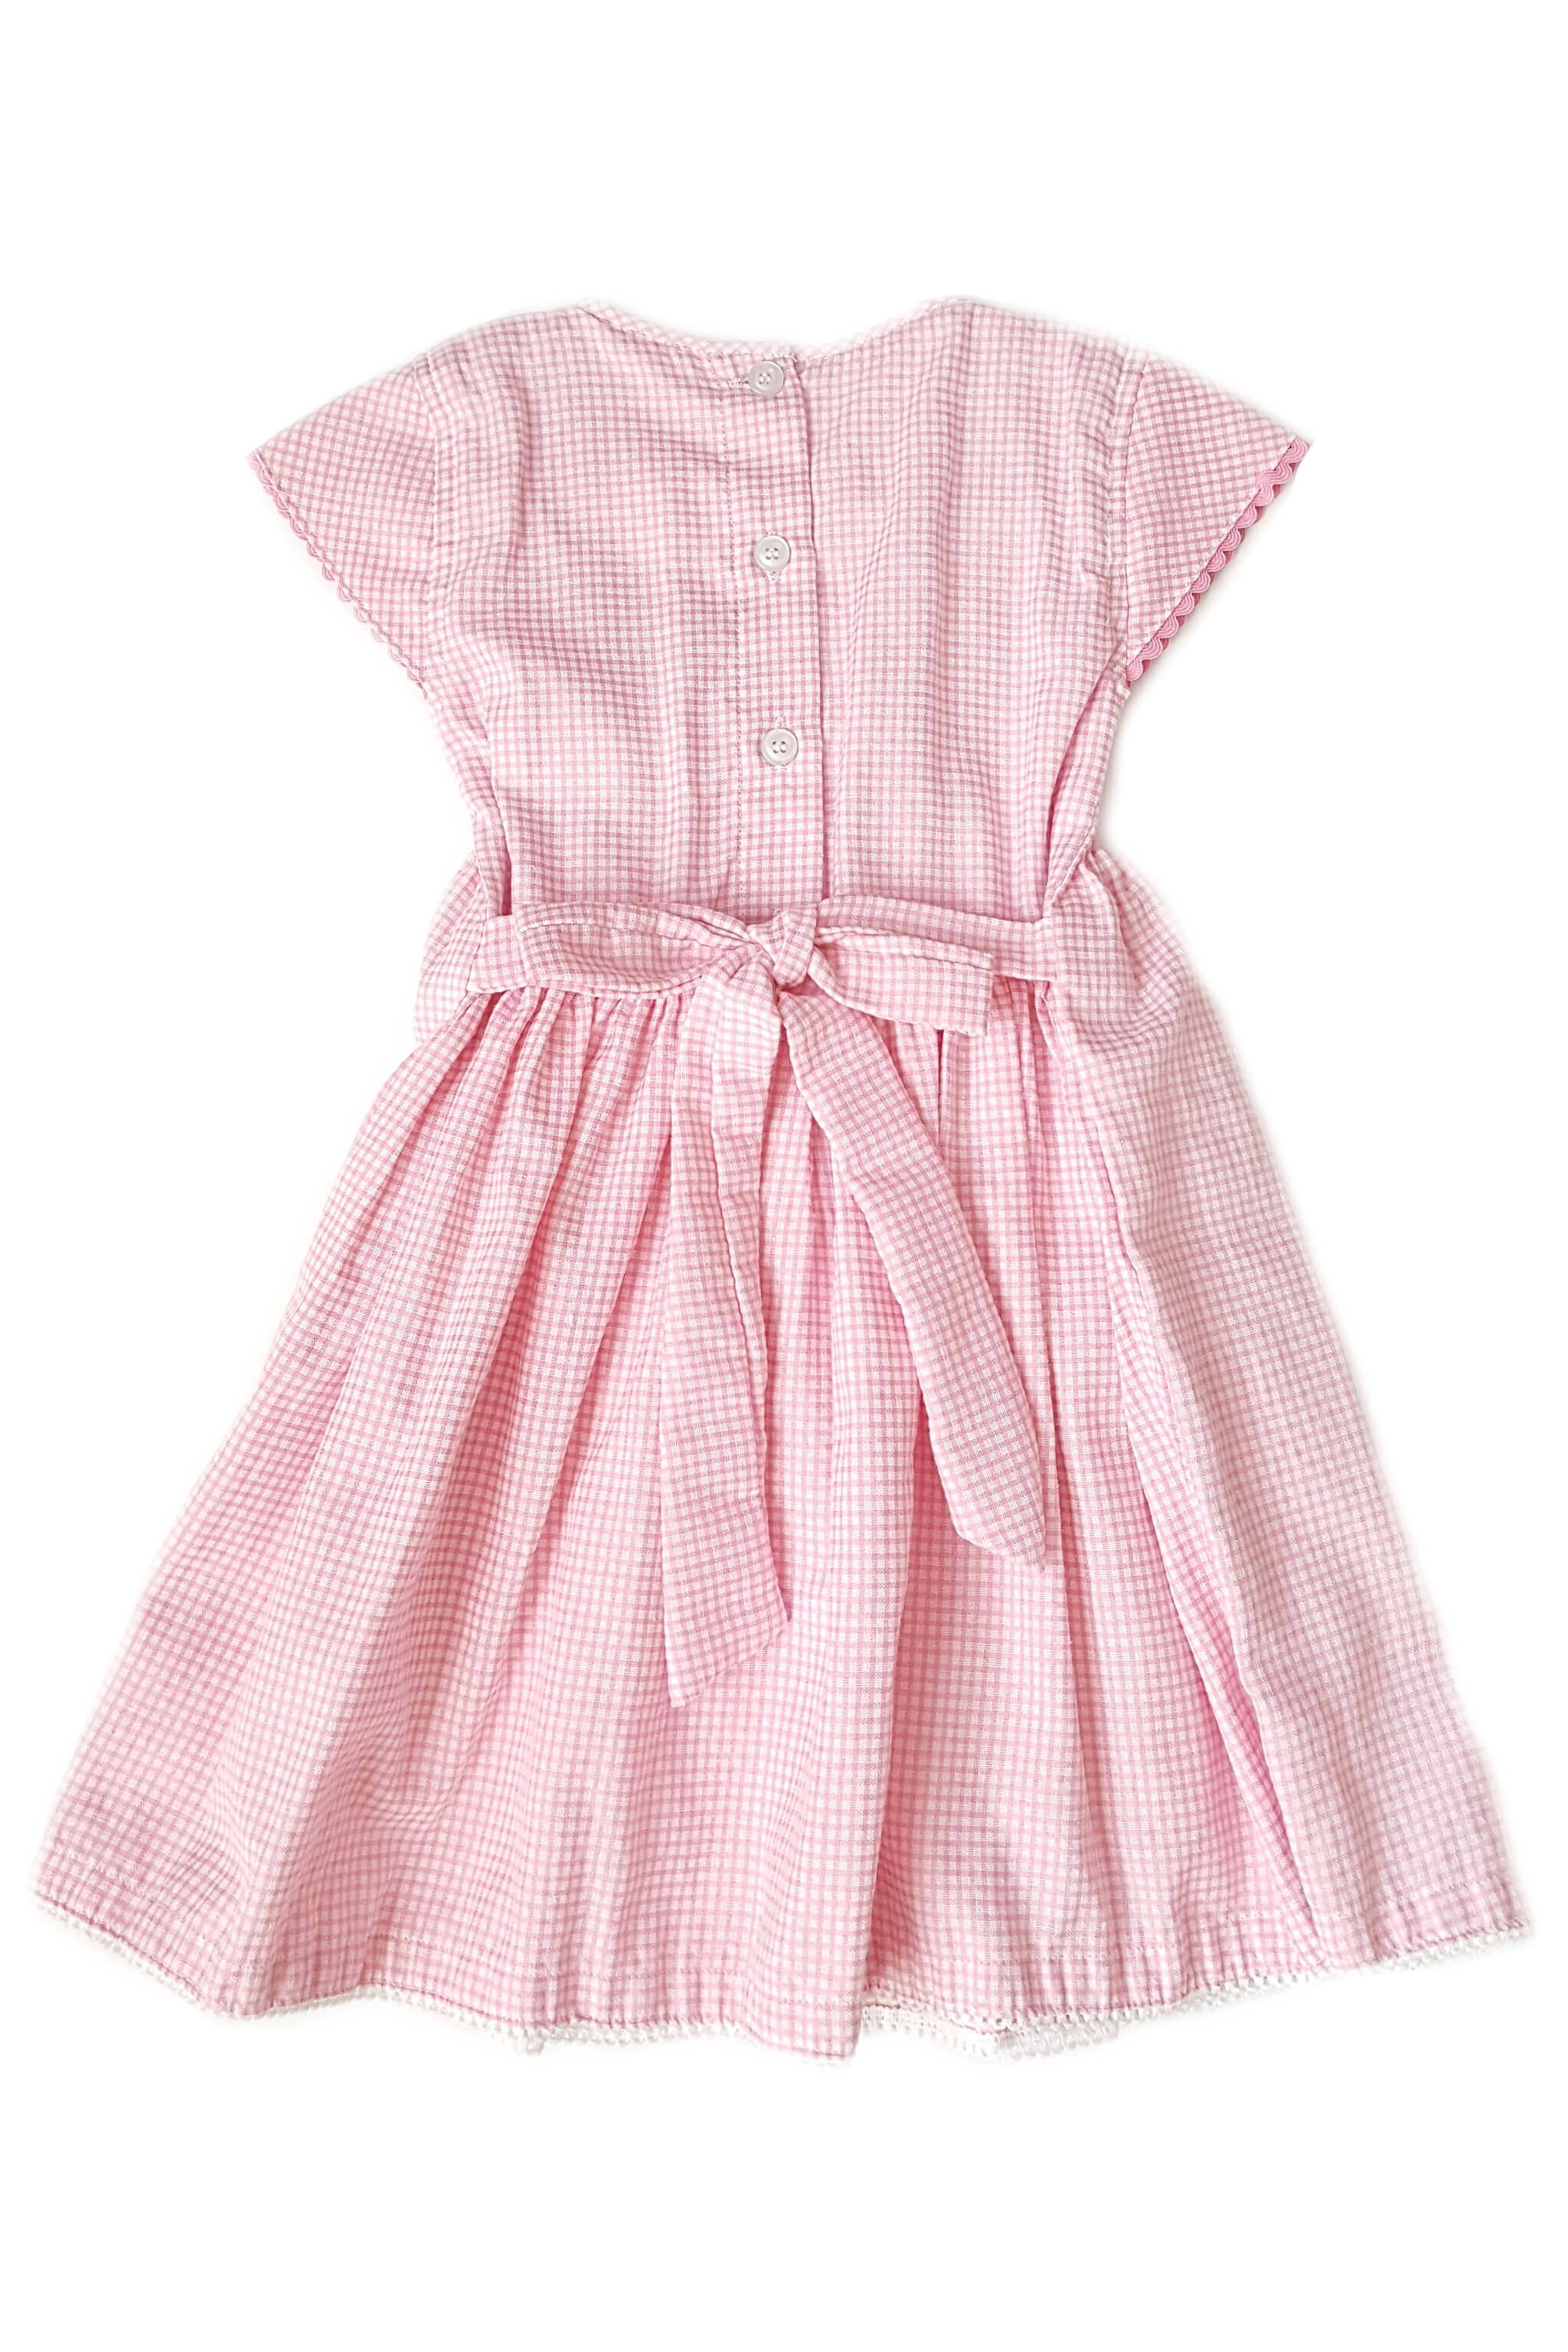 Back of pink gingham dress with hand-smocked bodice and white collar with hand-embroidered rosettes and sash to tie at waist for girls